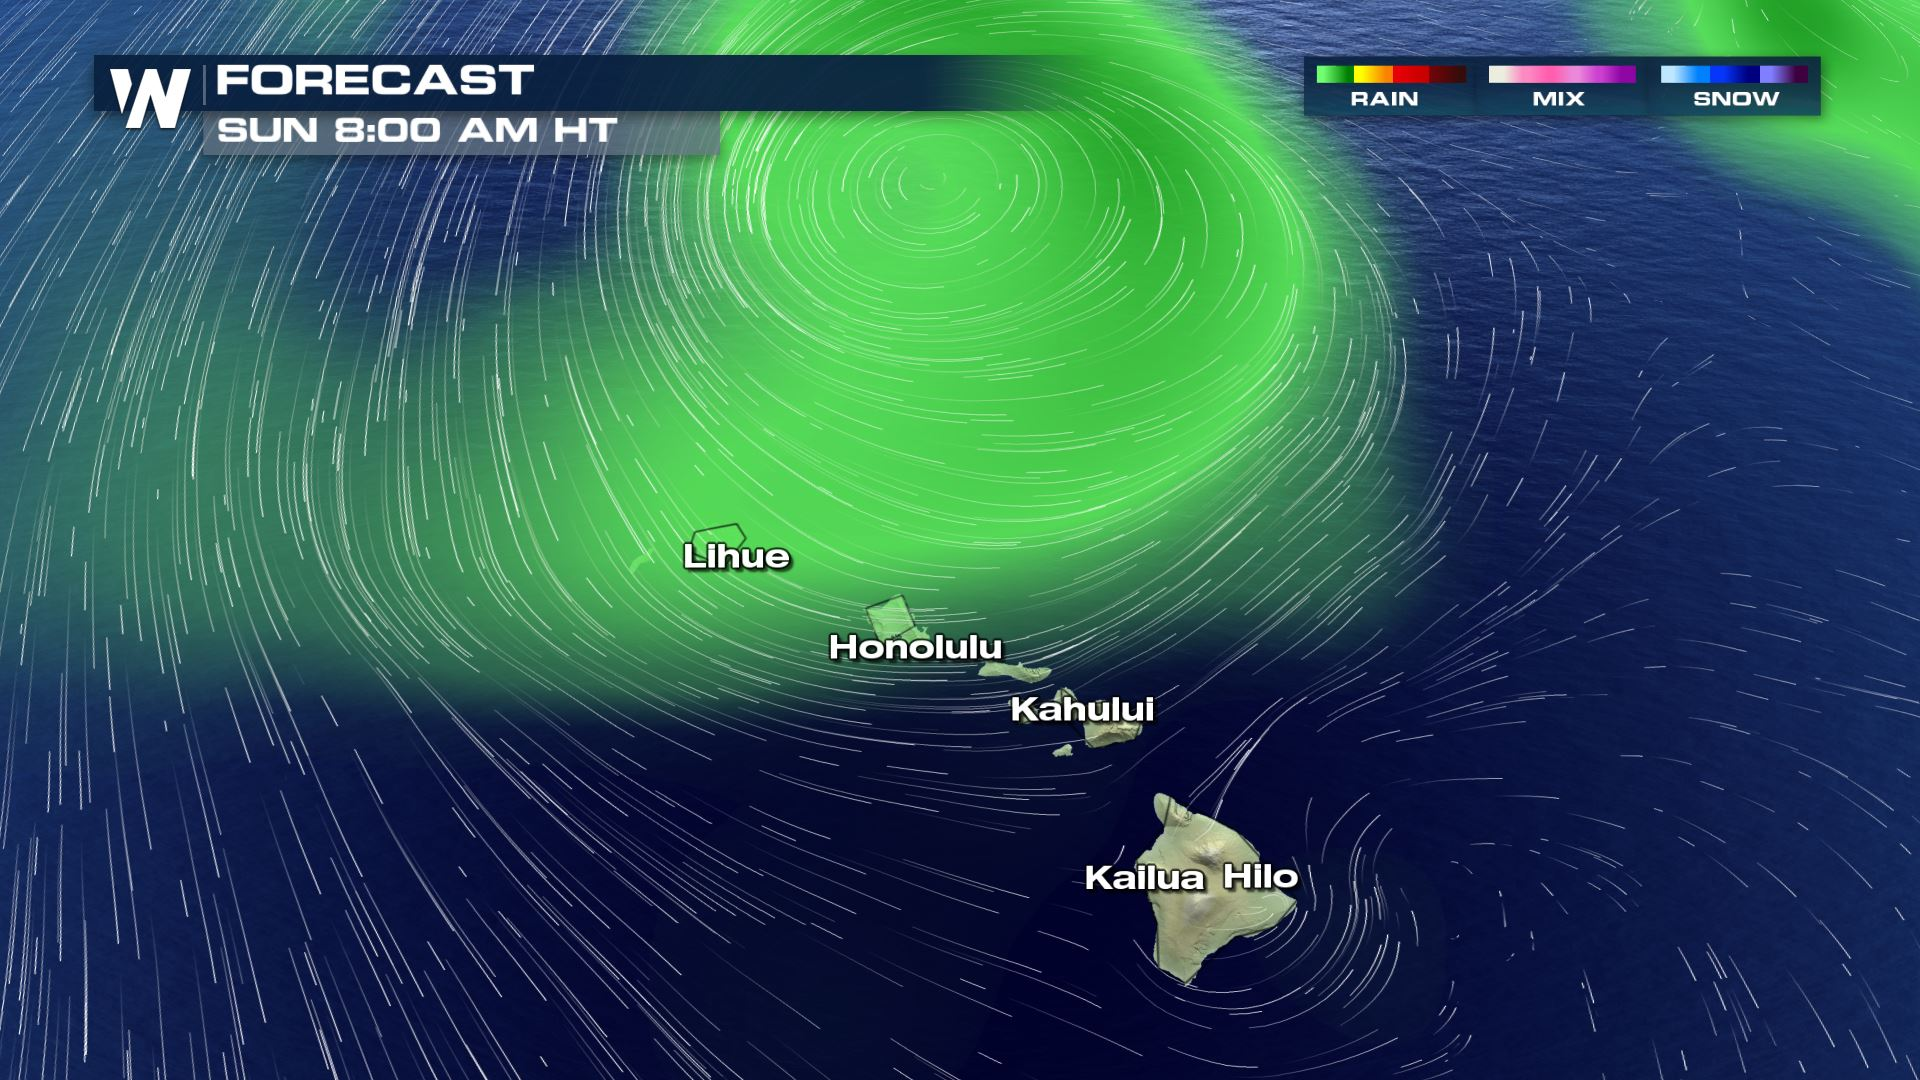 VIDEO: Powerful Storm Nears Hawaii With Damaging Wind